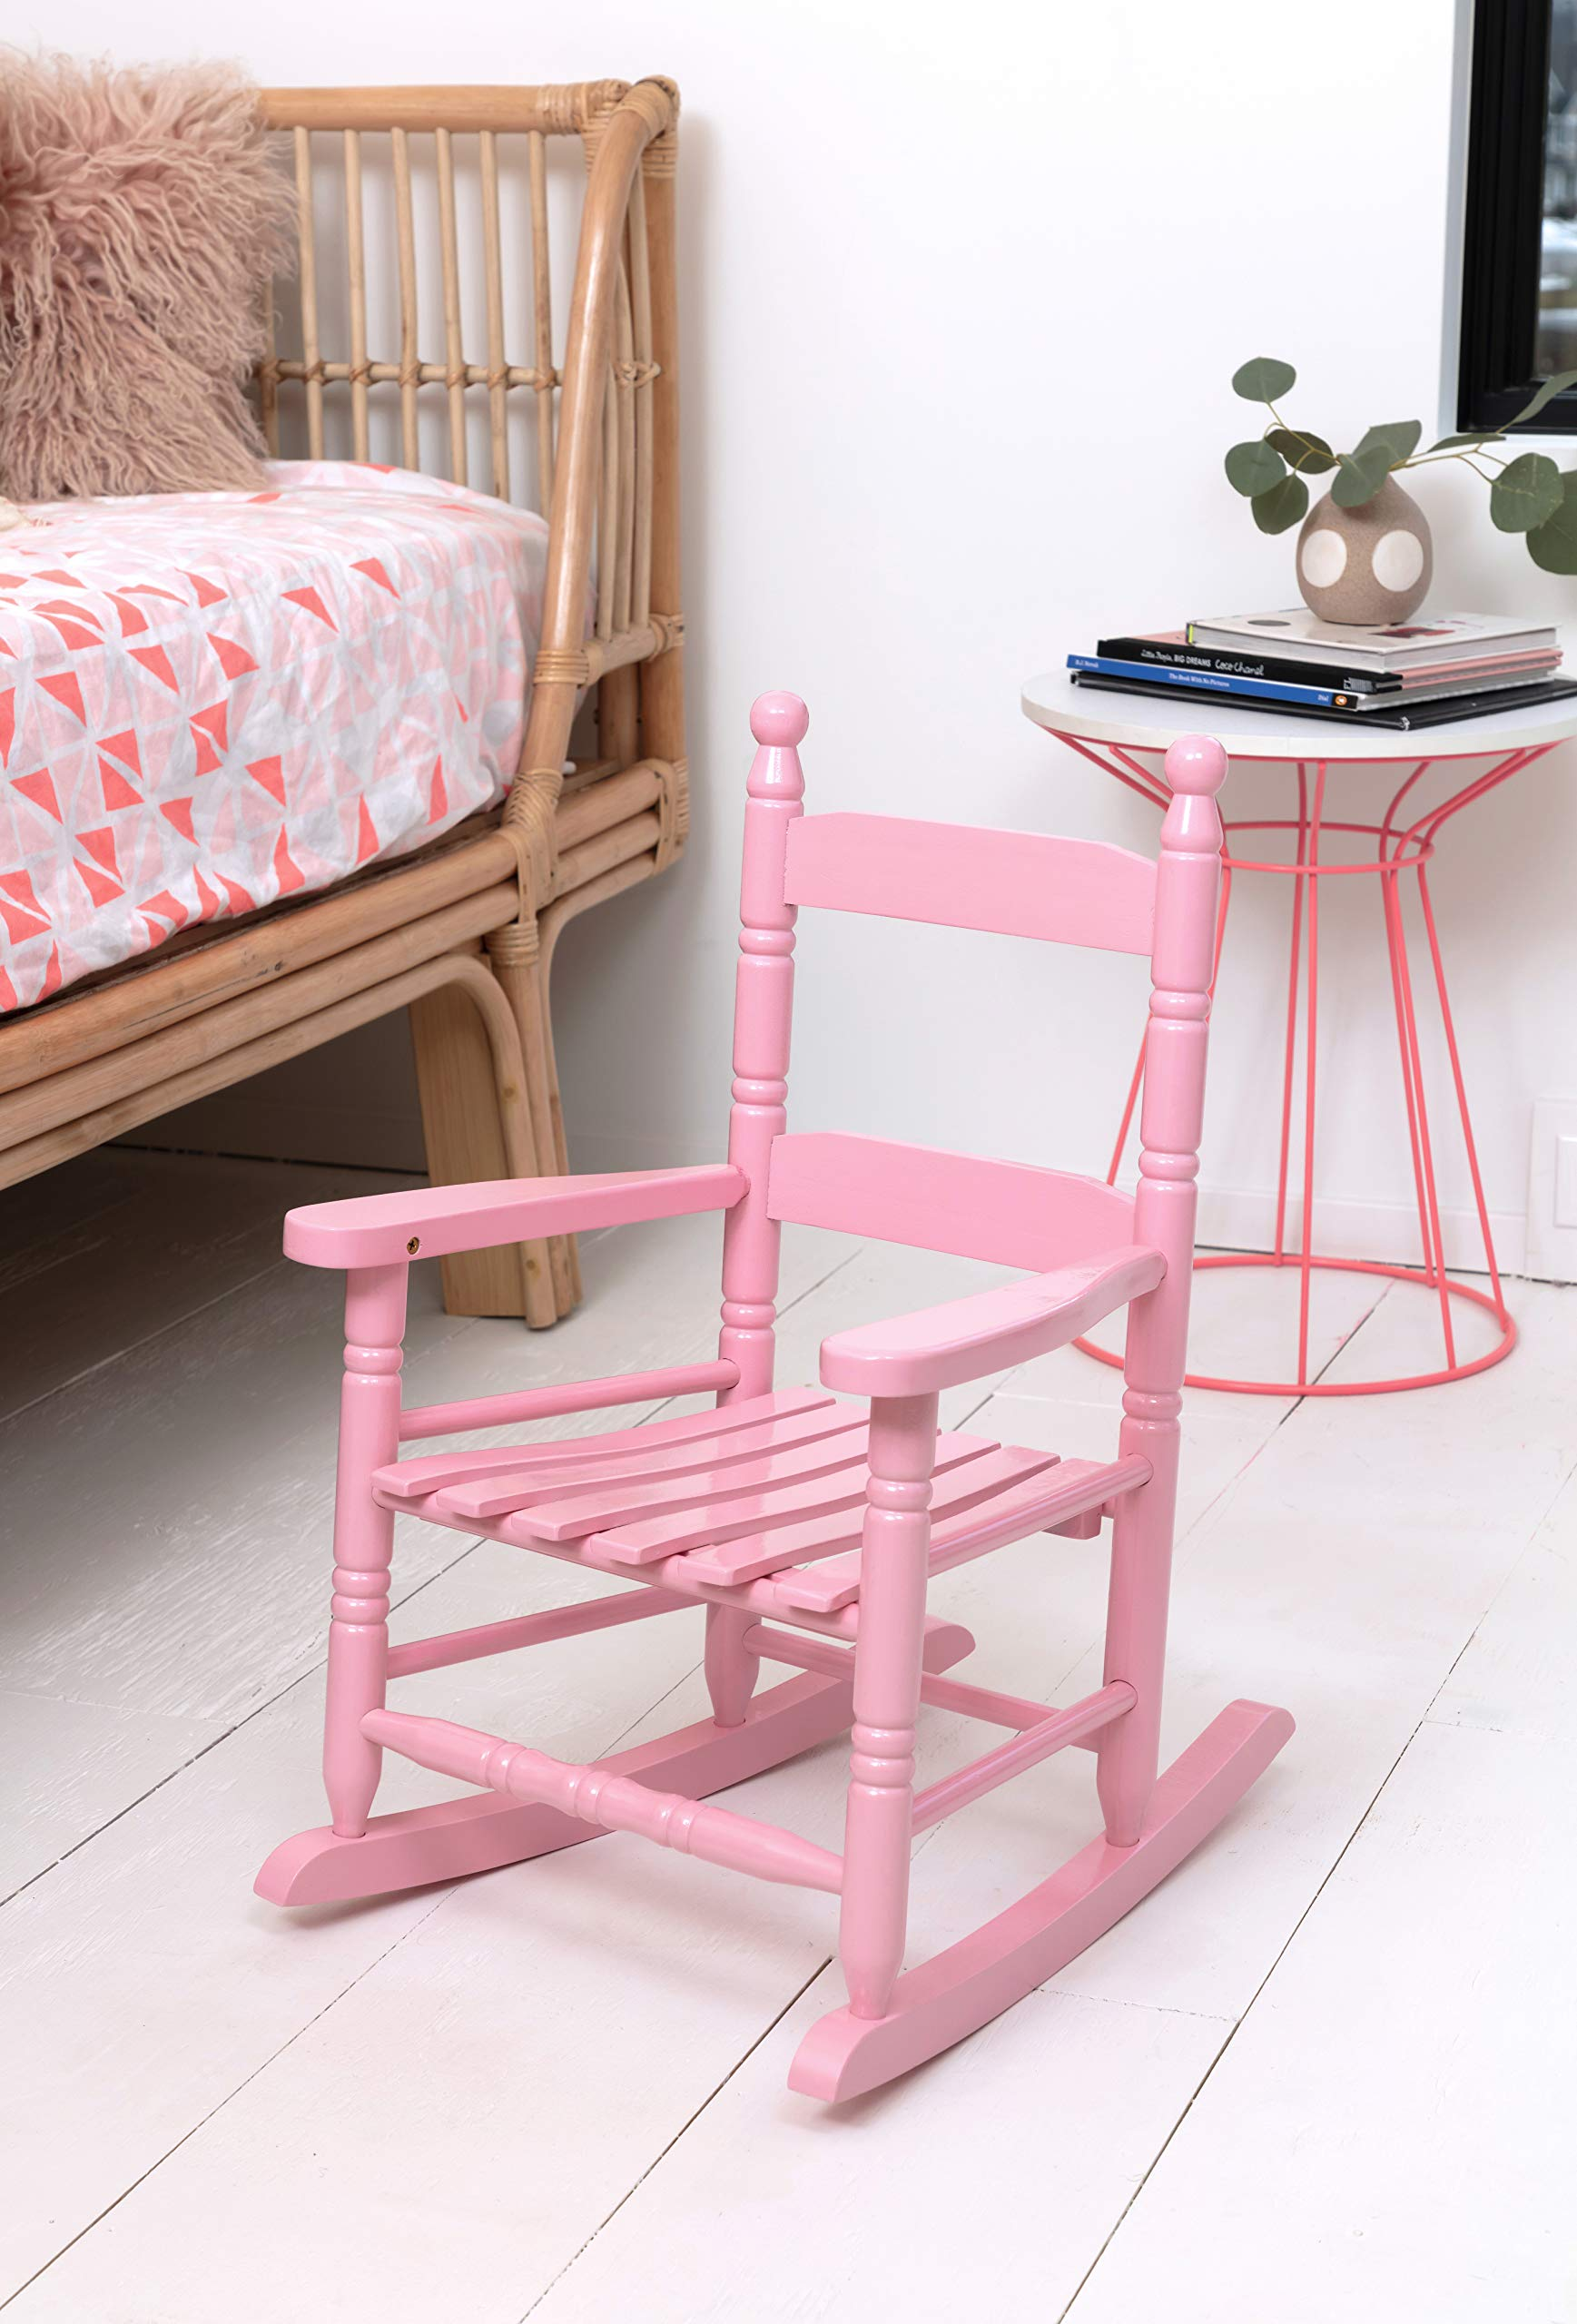 Jack-Post KN-10P Knollwood Classic Child's Porch Rocker, Pink by JACK-POST